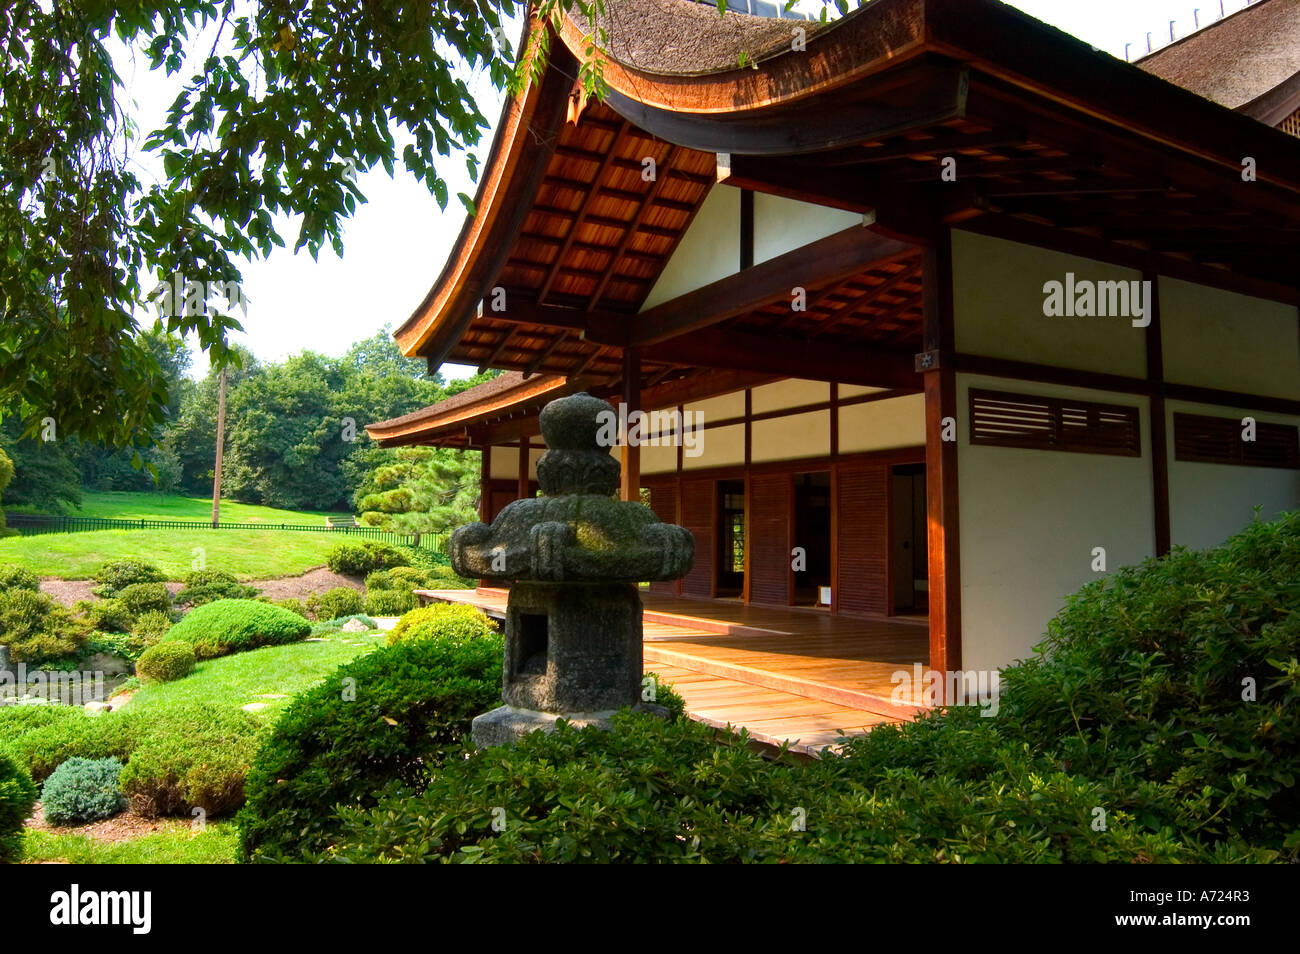 Merveilleux Japanese House And Garden In Fairmount Park In Philadelphia Pennsylvania    Stock Image